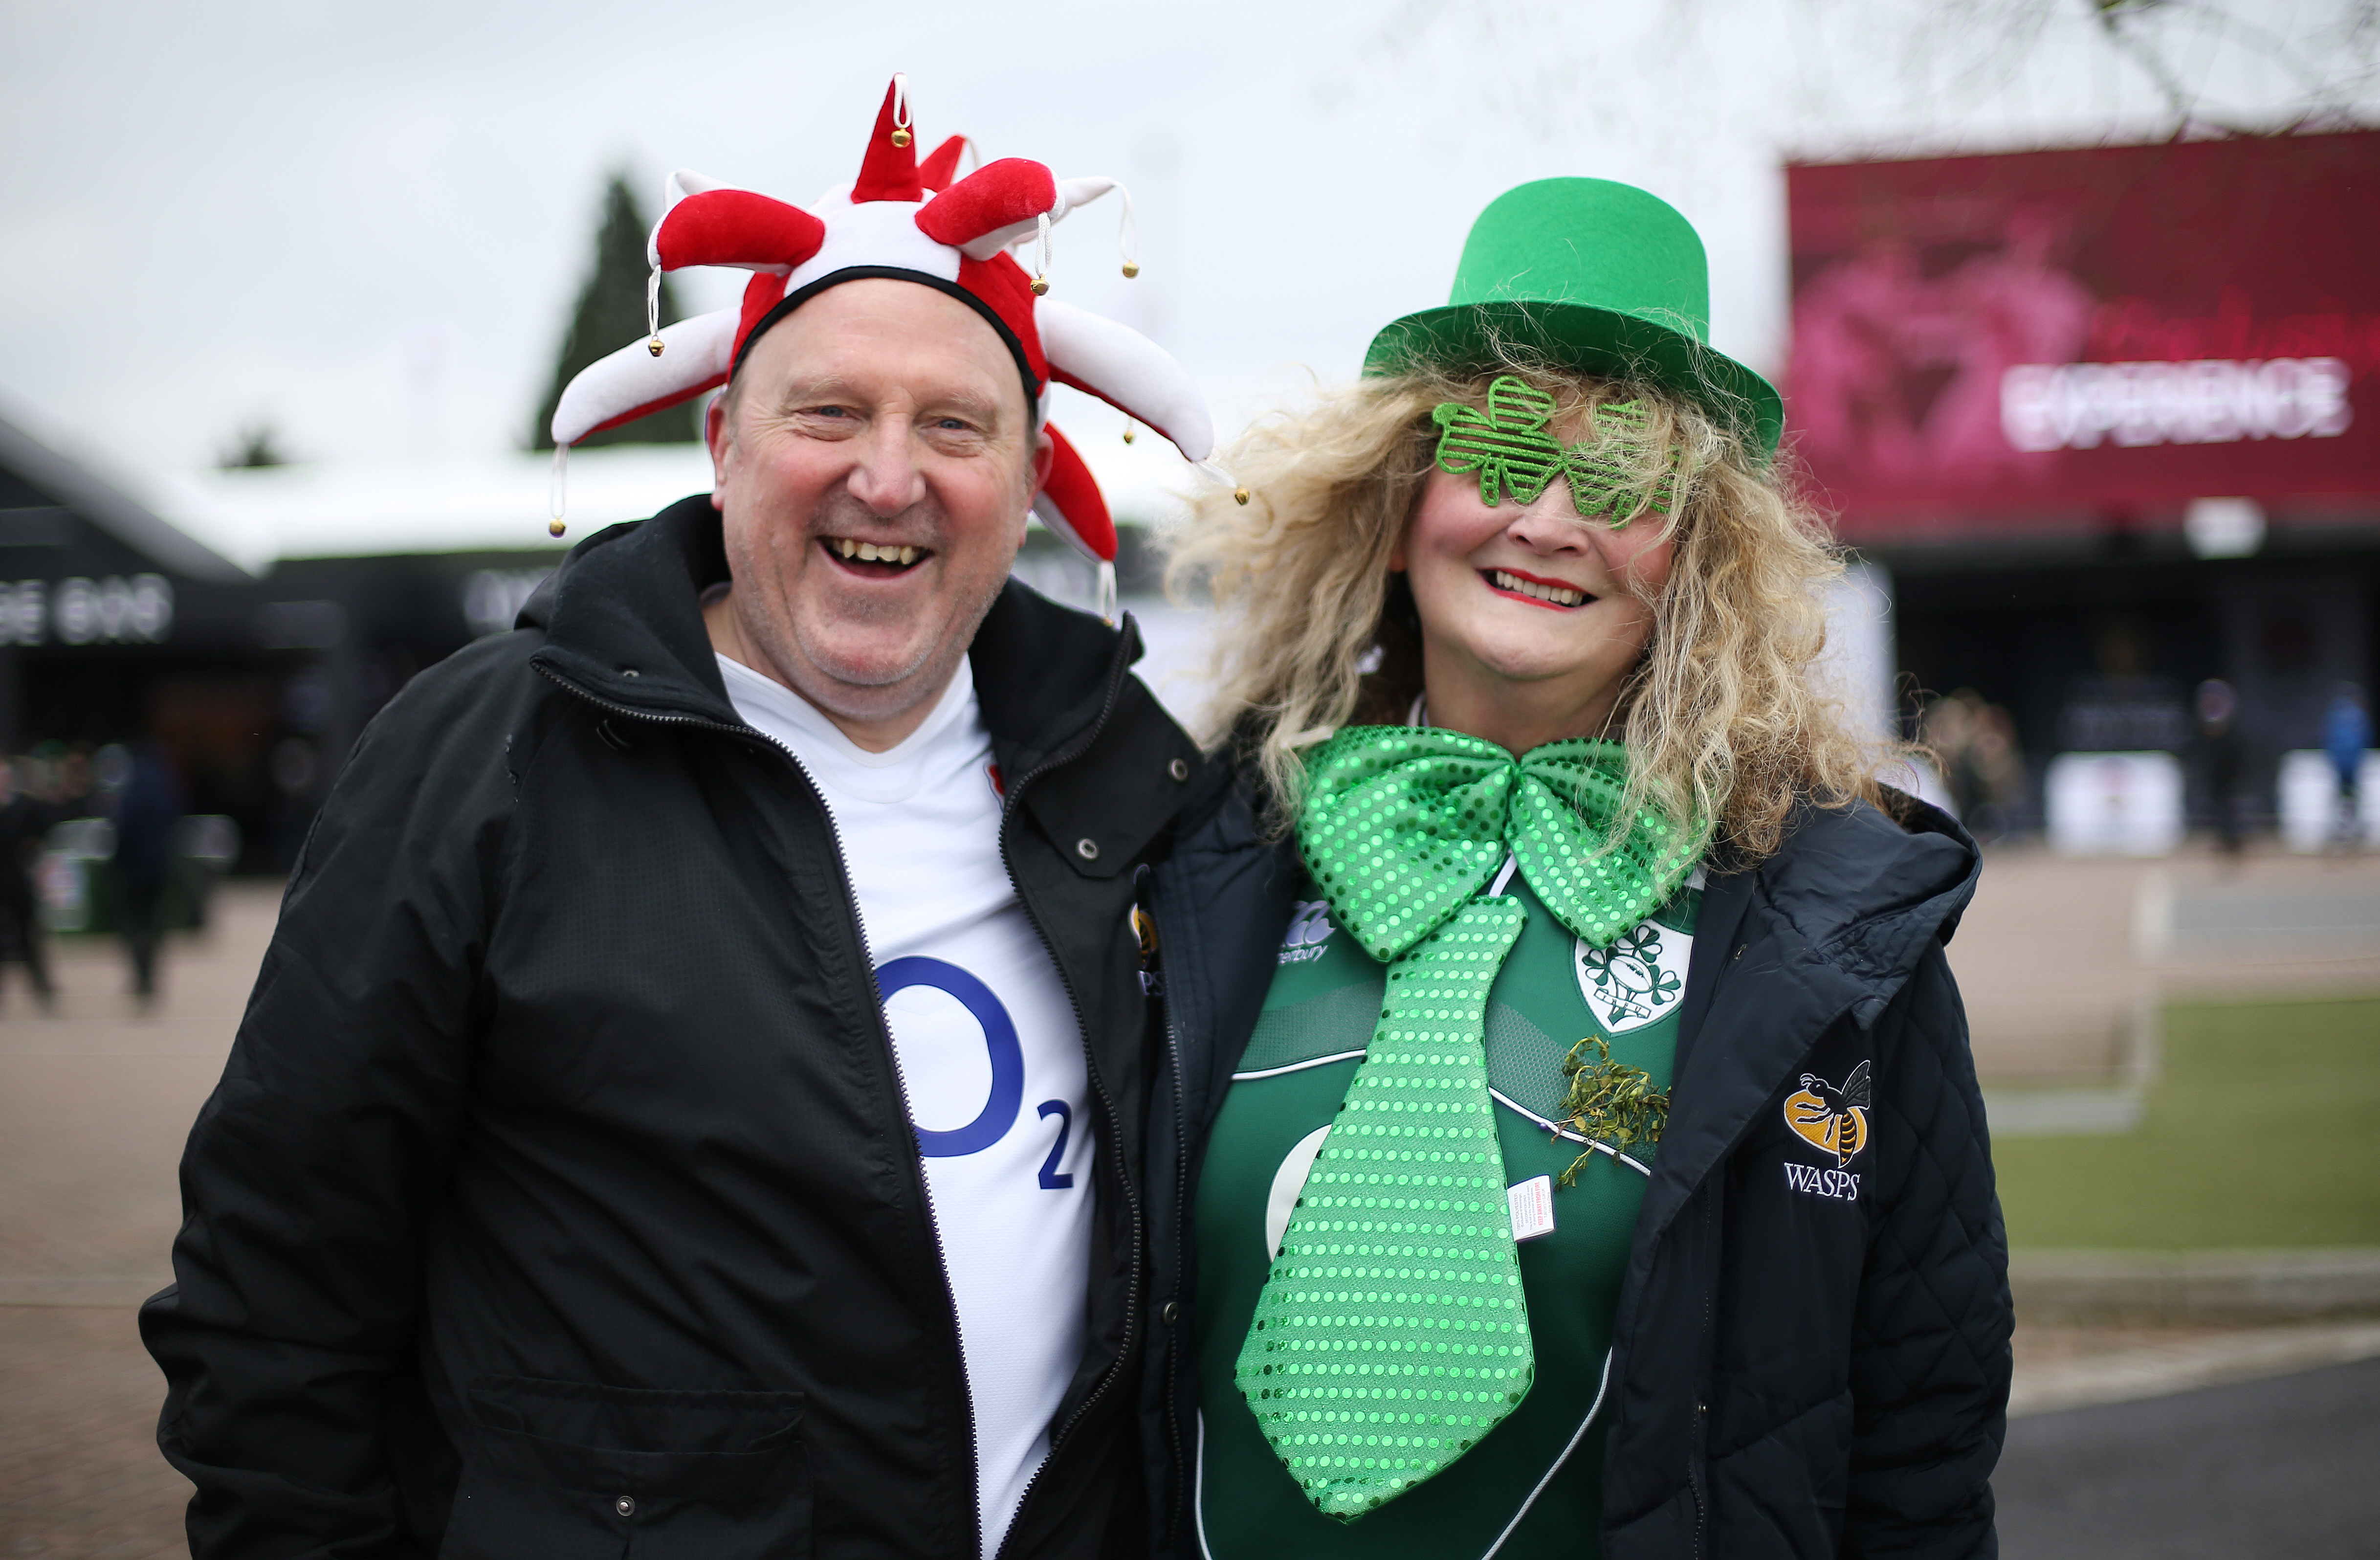 England and Ireland fans before the NatWest 6 Nations match at Twickenham Stadium, London